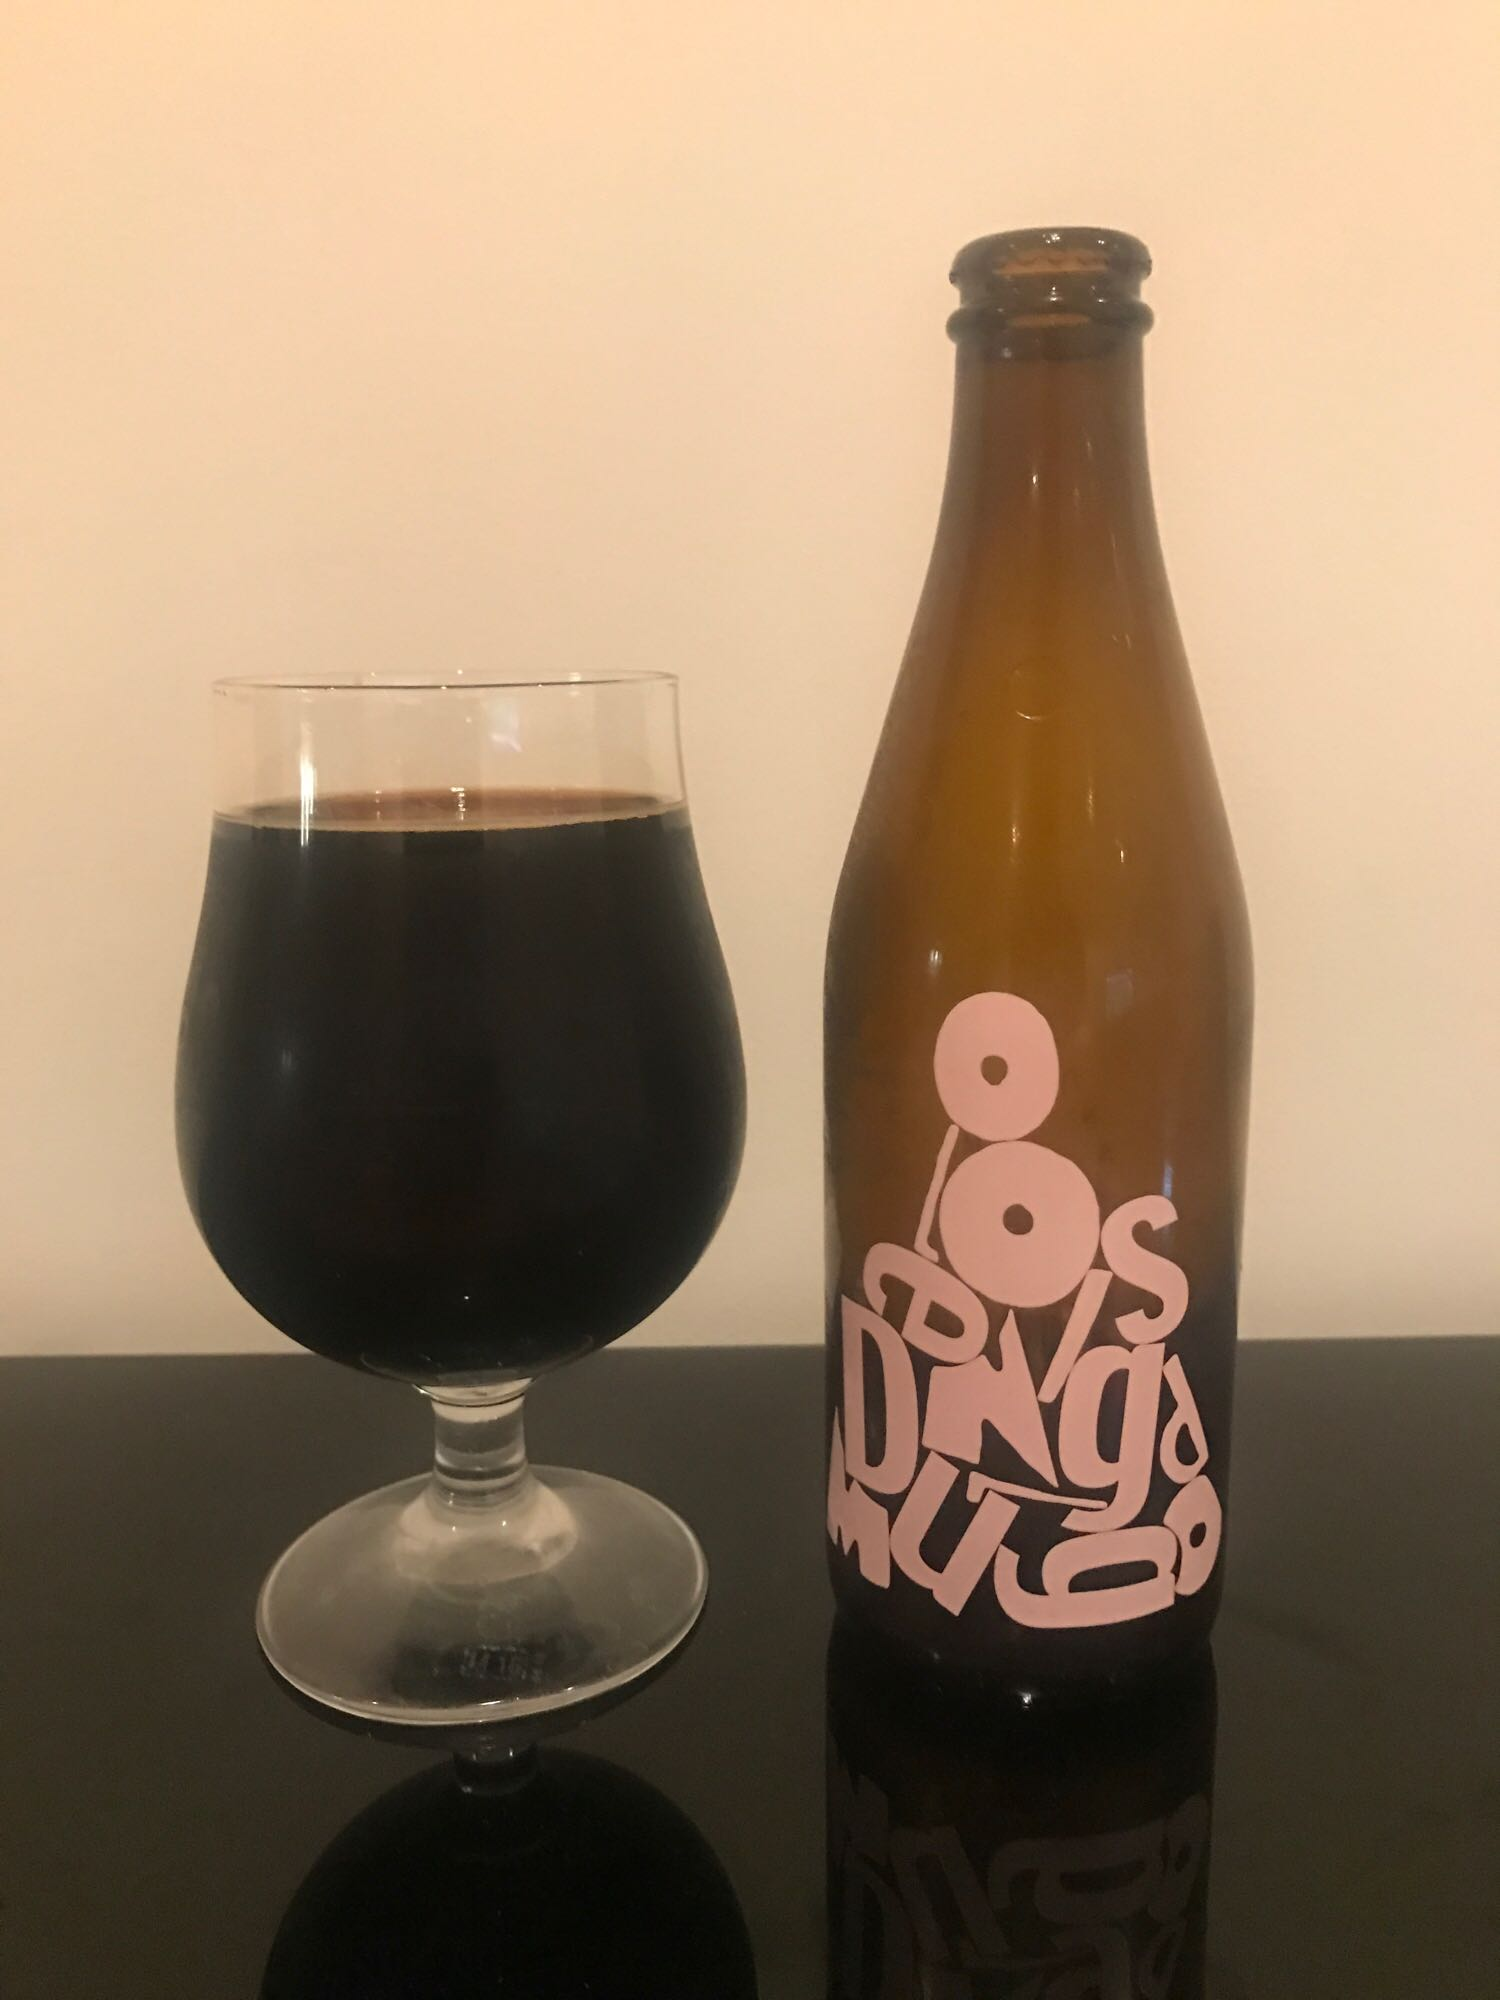 Anagram Blueberry Cheesecake - Imperial Stout 12% // Omnipollo x Dugges Bryggeri - This beer has been sitting in my fridge for months, waiting for the right time to try it. But what better place than here? What better time than now? ALL, HELL, CAN'T STOP US NOWAhem. Anyway, this is pretty much the ultimate dessert beer. All of the blueberry, all of the cheesecake, all of the stout. I would totally believe someone if they told me that Omnipollo and Dugges had liquidised a blueberry cheesecake and mixed it with an impy stout to make this.It is very sweet but really, what do you expect from a blueberry cheesecake stout? It's meant to be decadent, you're probably not meant to drink more than one. Why are you still reading this and not drinking one immediately? Come back and thank me later.